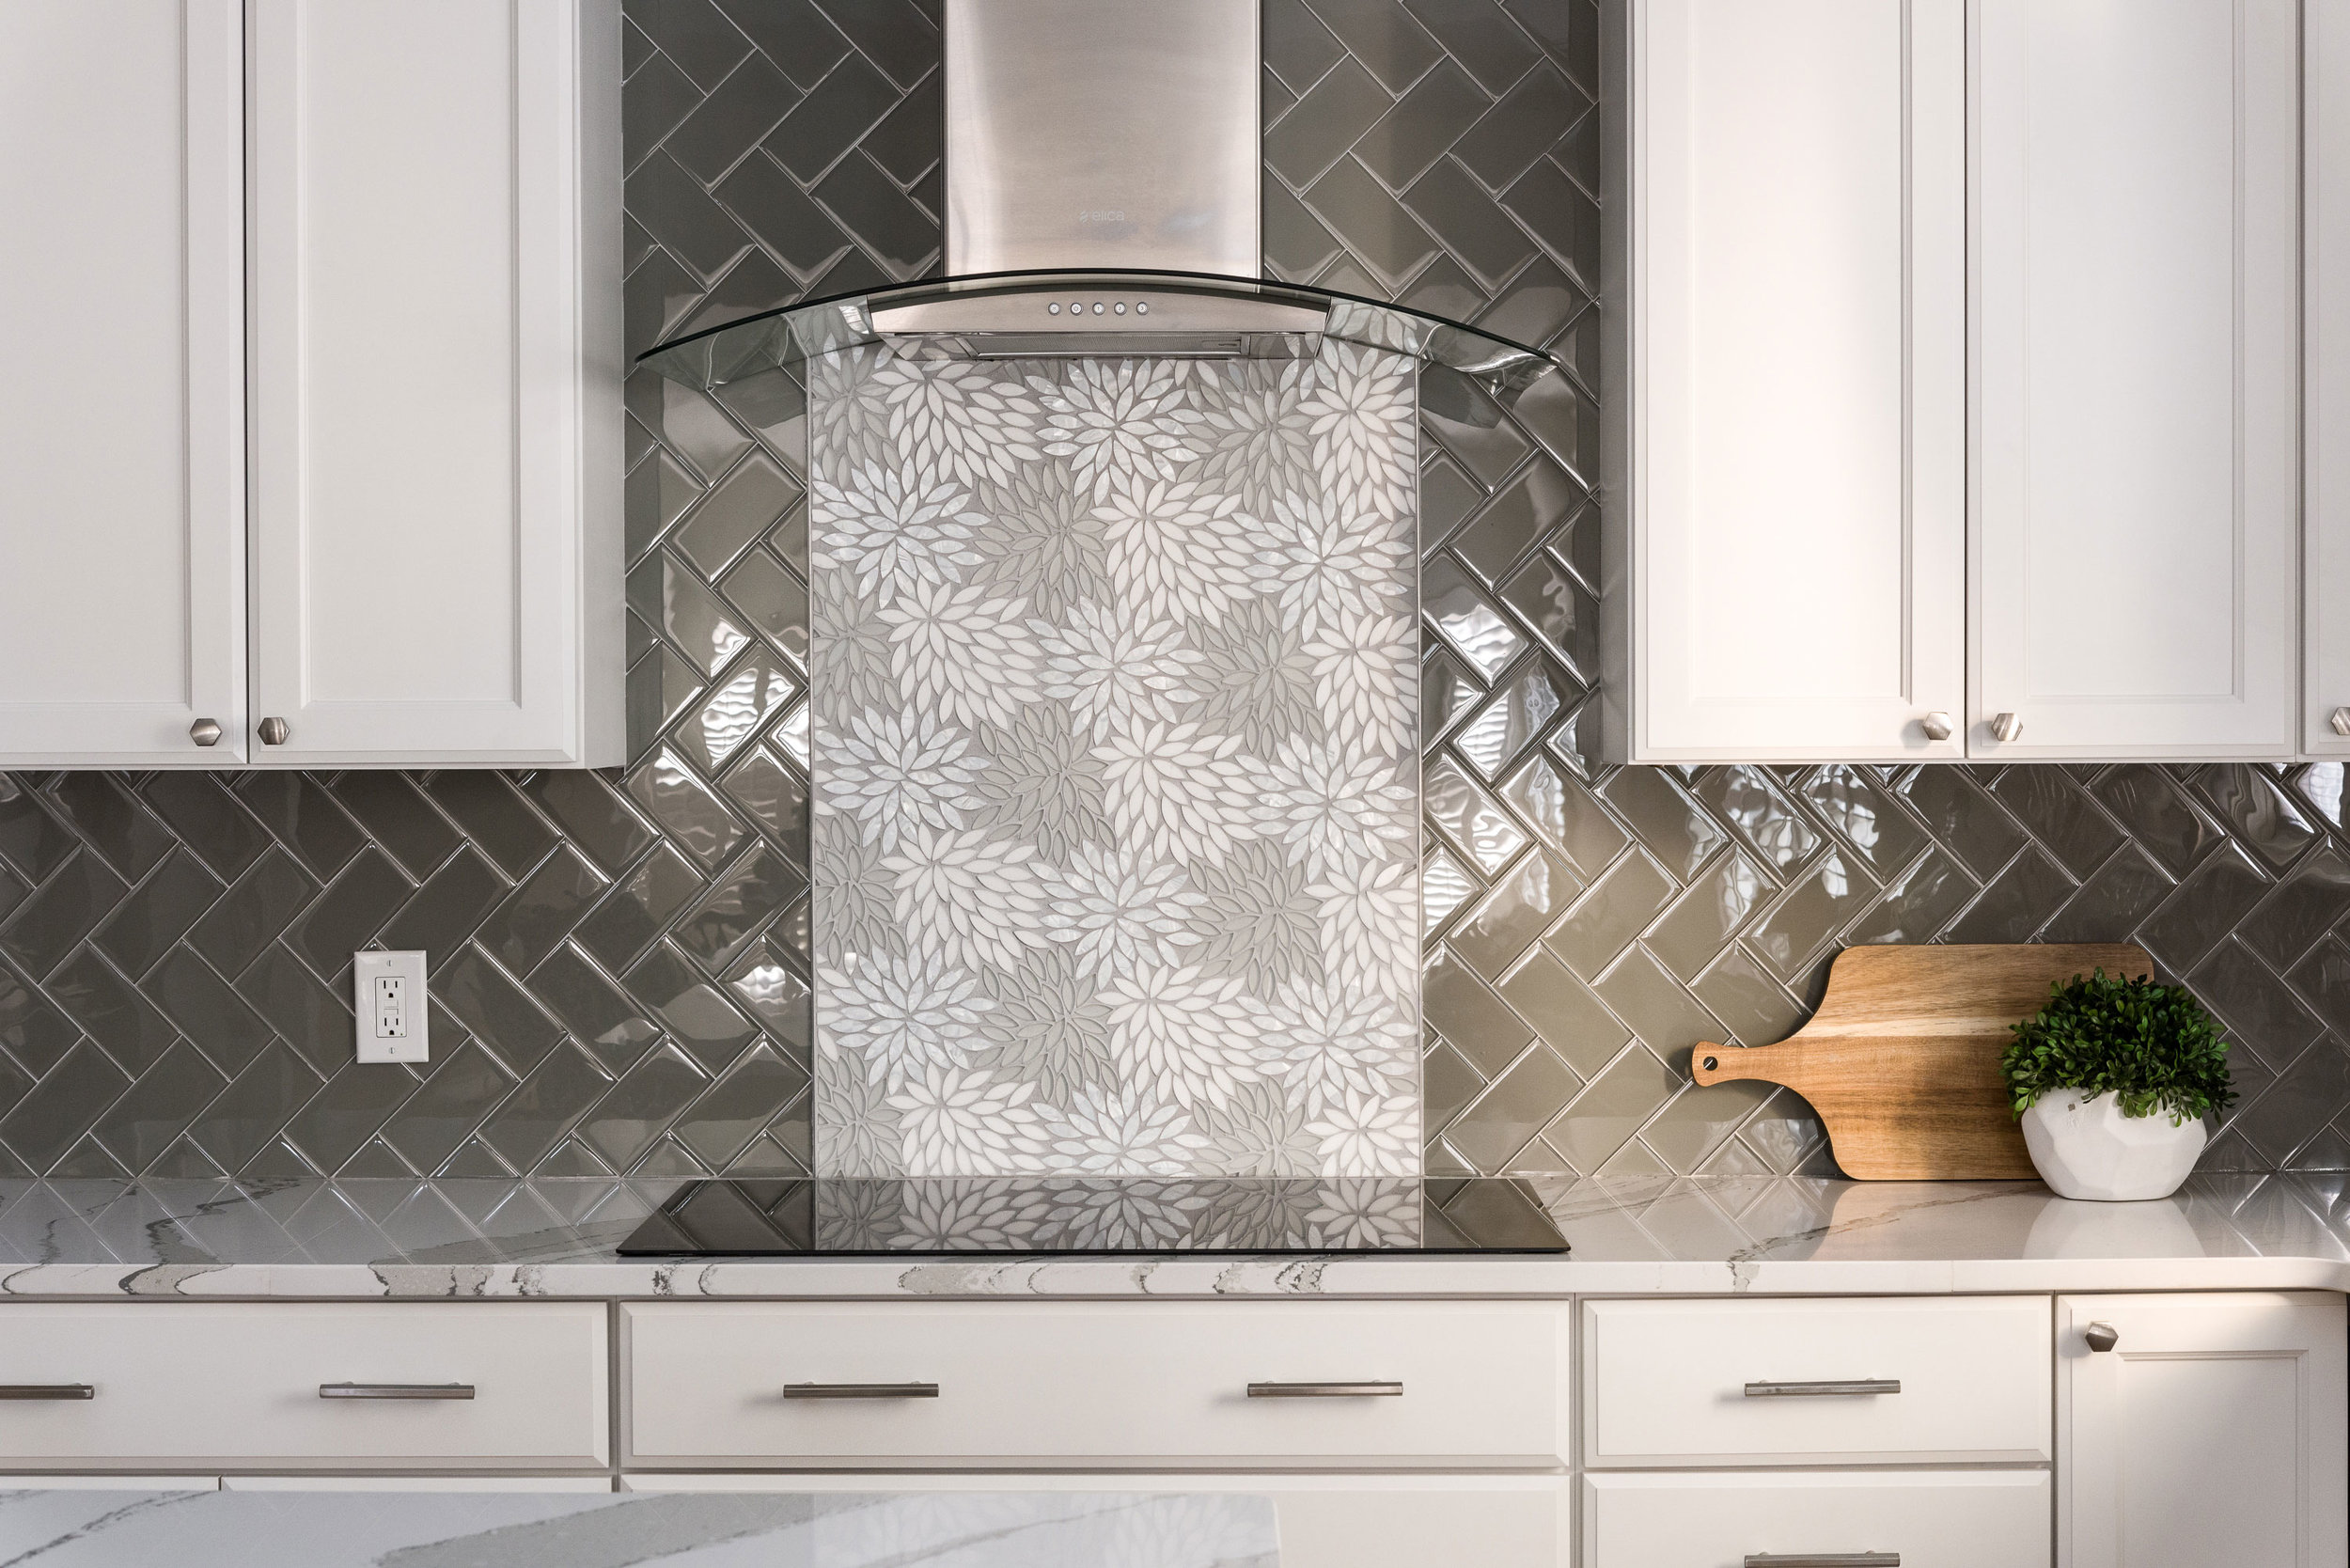 floral-backsplash.jpg